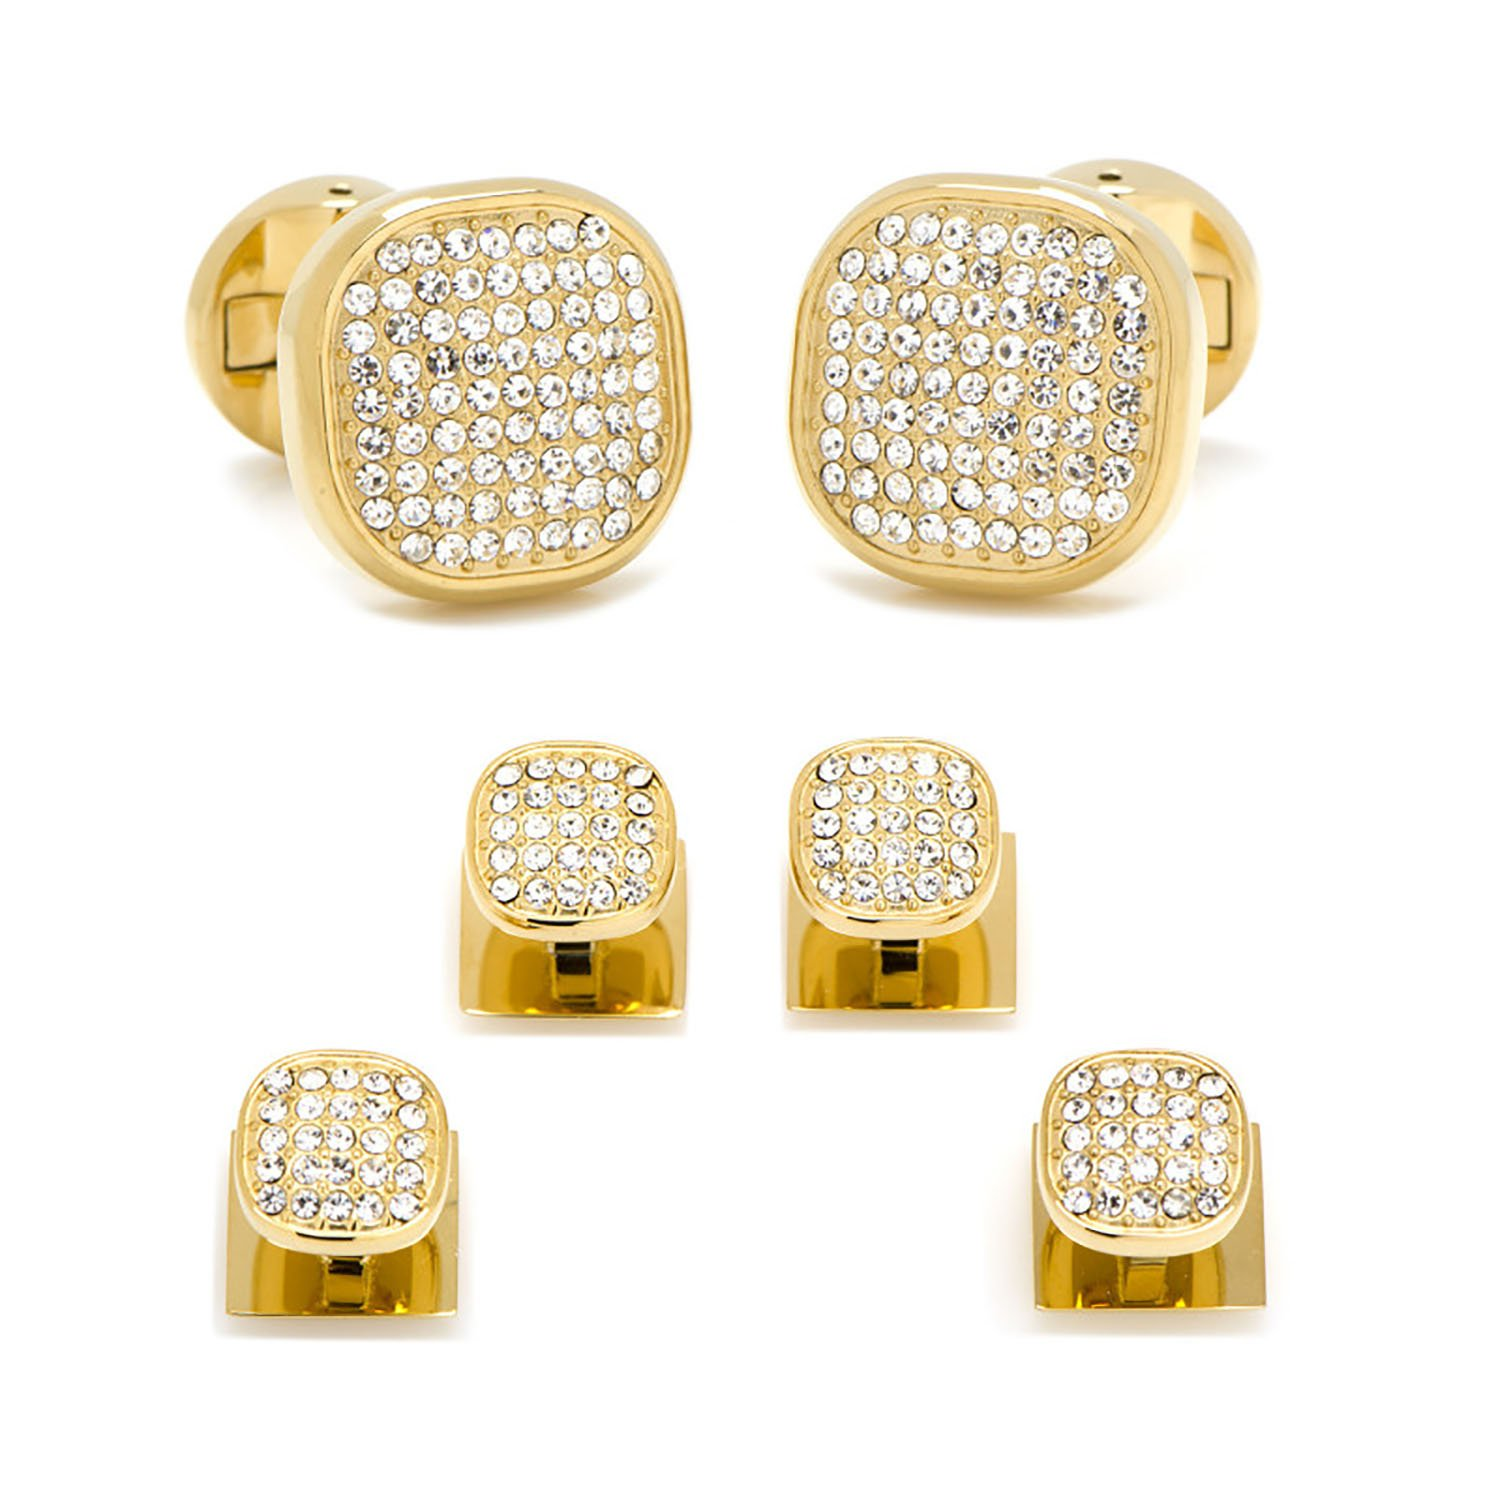 Gold Stainless Steel White Pave Crystal Stud Set by Ox and Bull Trading Co Cufflinks